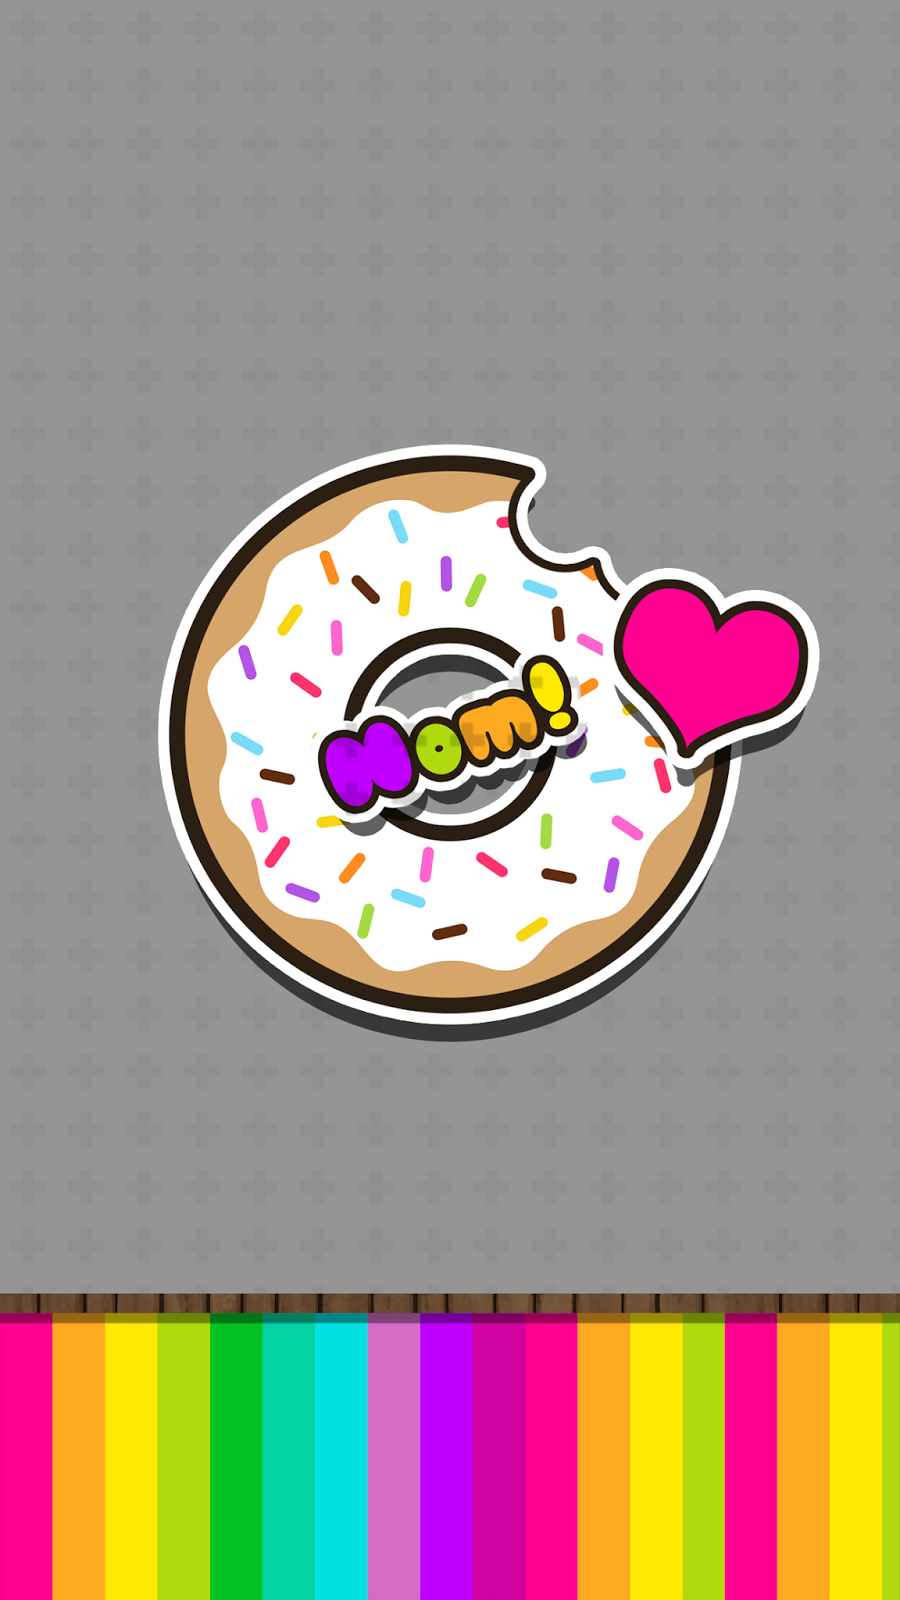 Great Wallpaper Hello Kitty Donut - 5da1a8402337c6ab6053c18665d819b0  Trends_761183.png